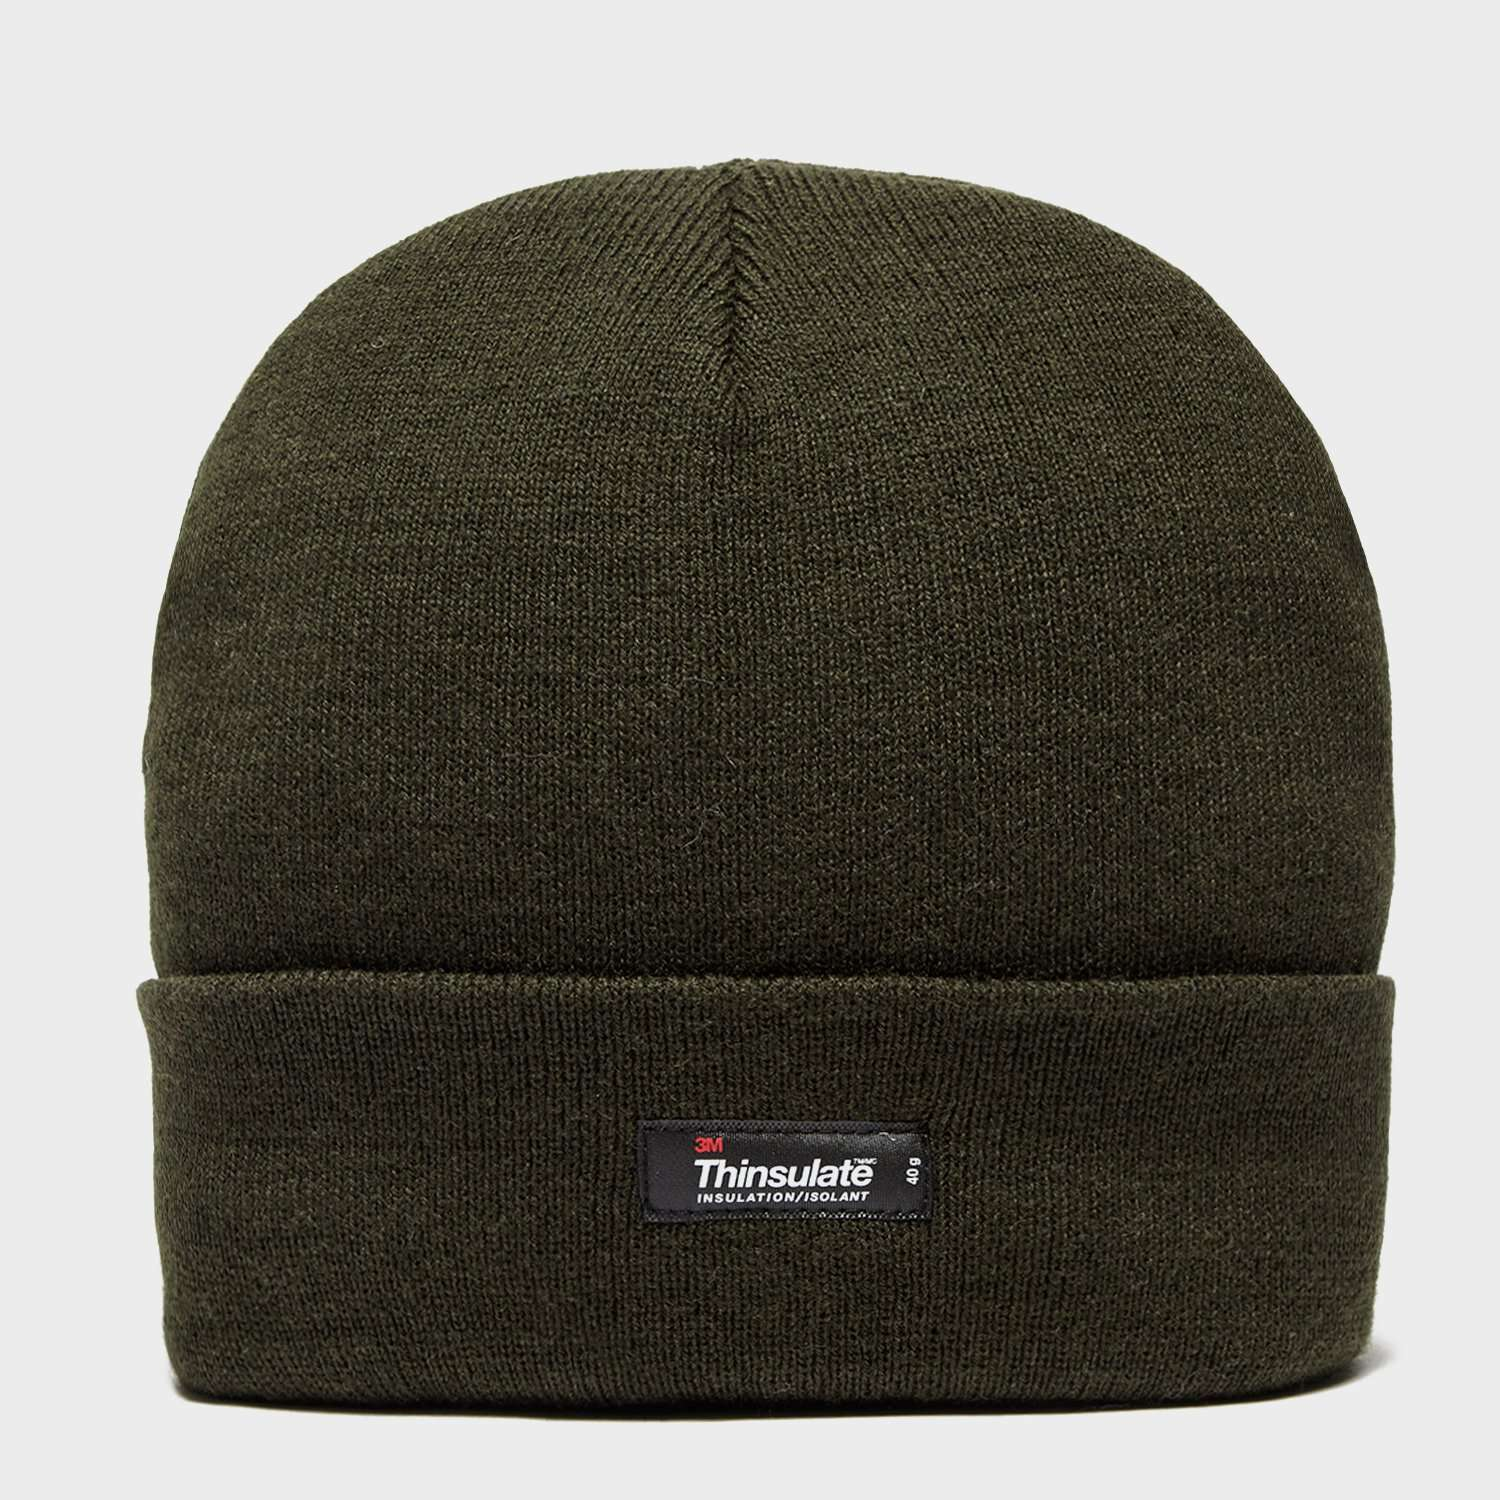 PETER STORM Men's Thinsulate Knitted Beanie